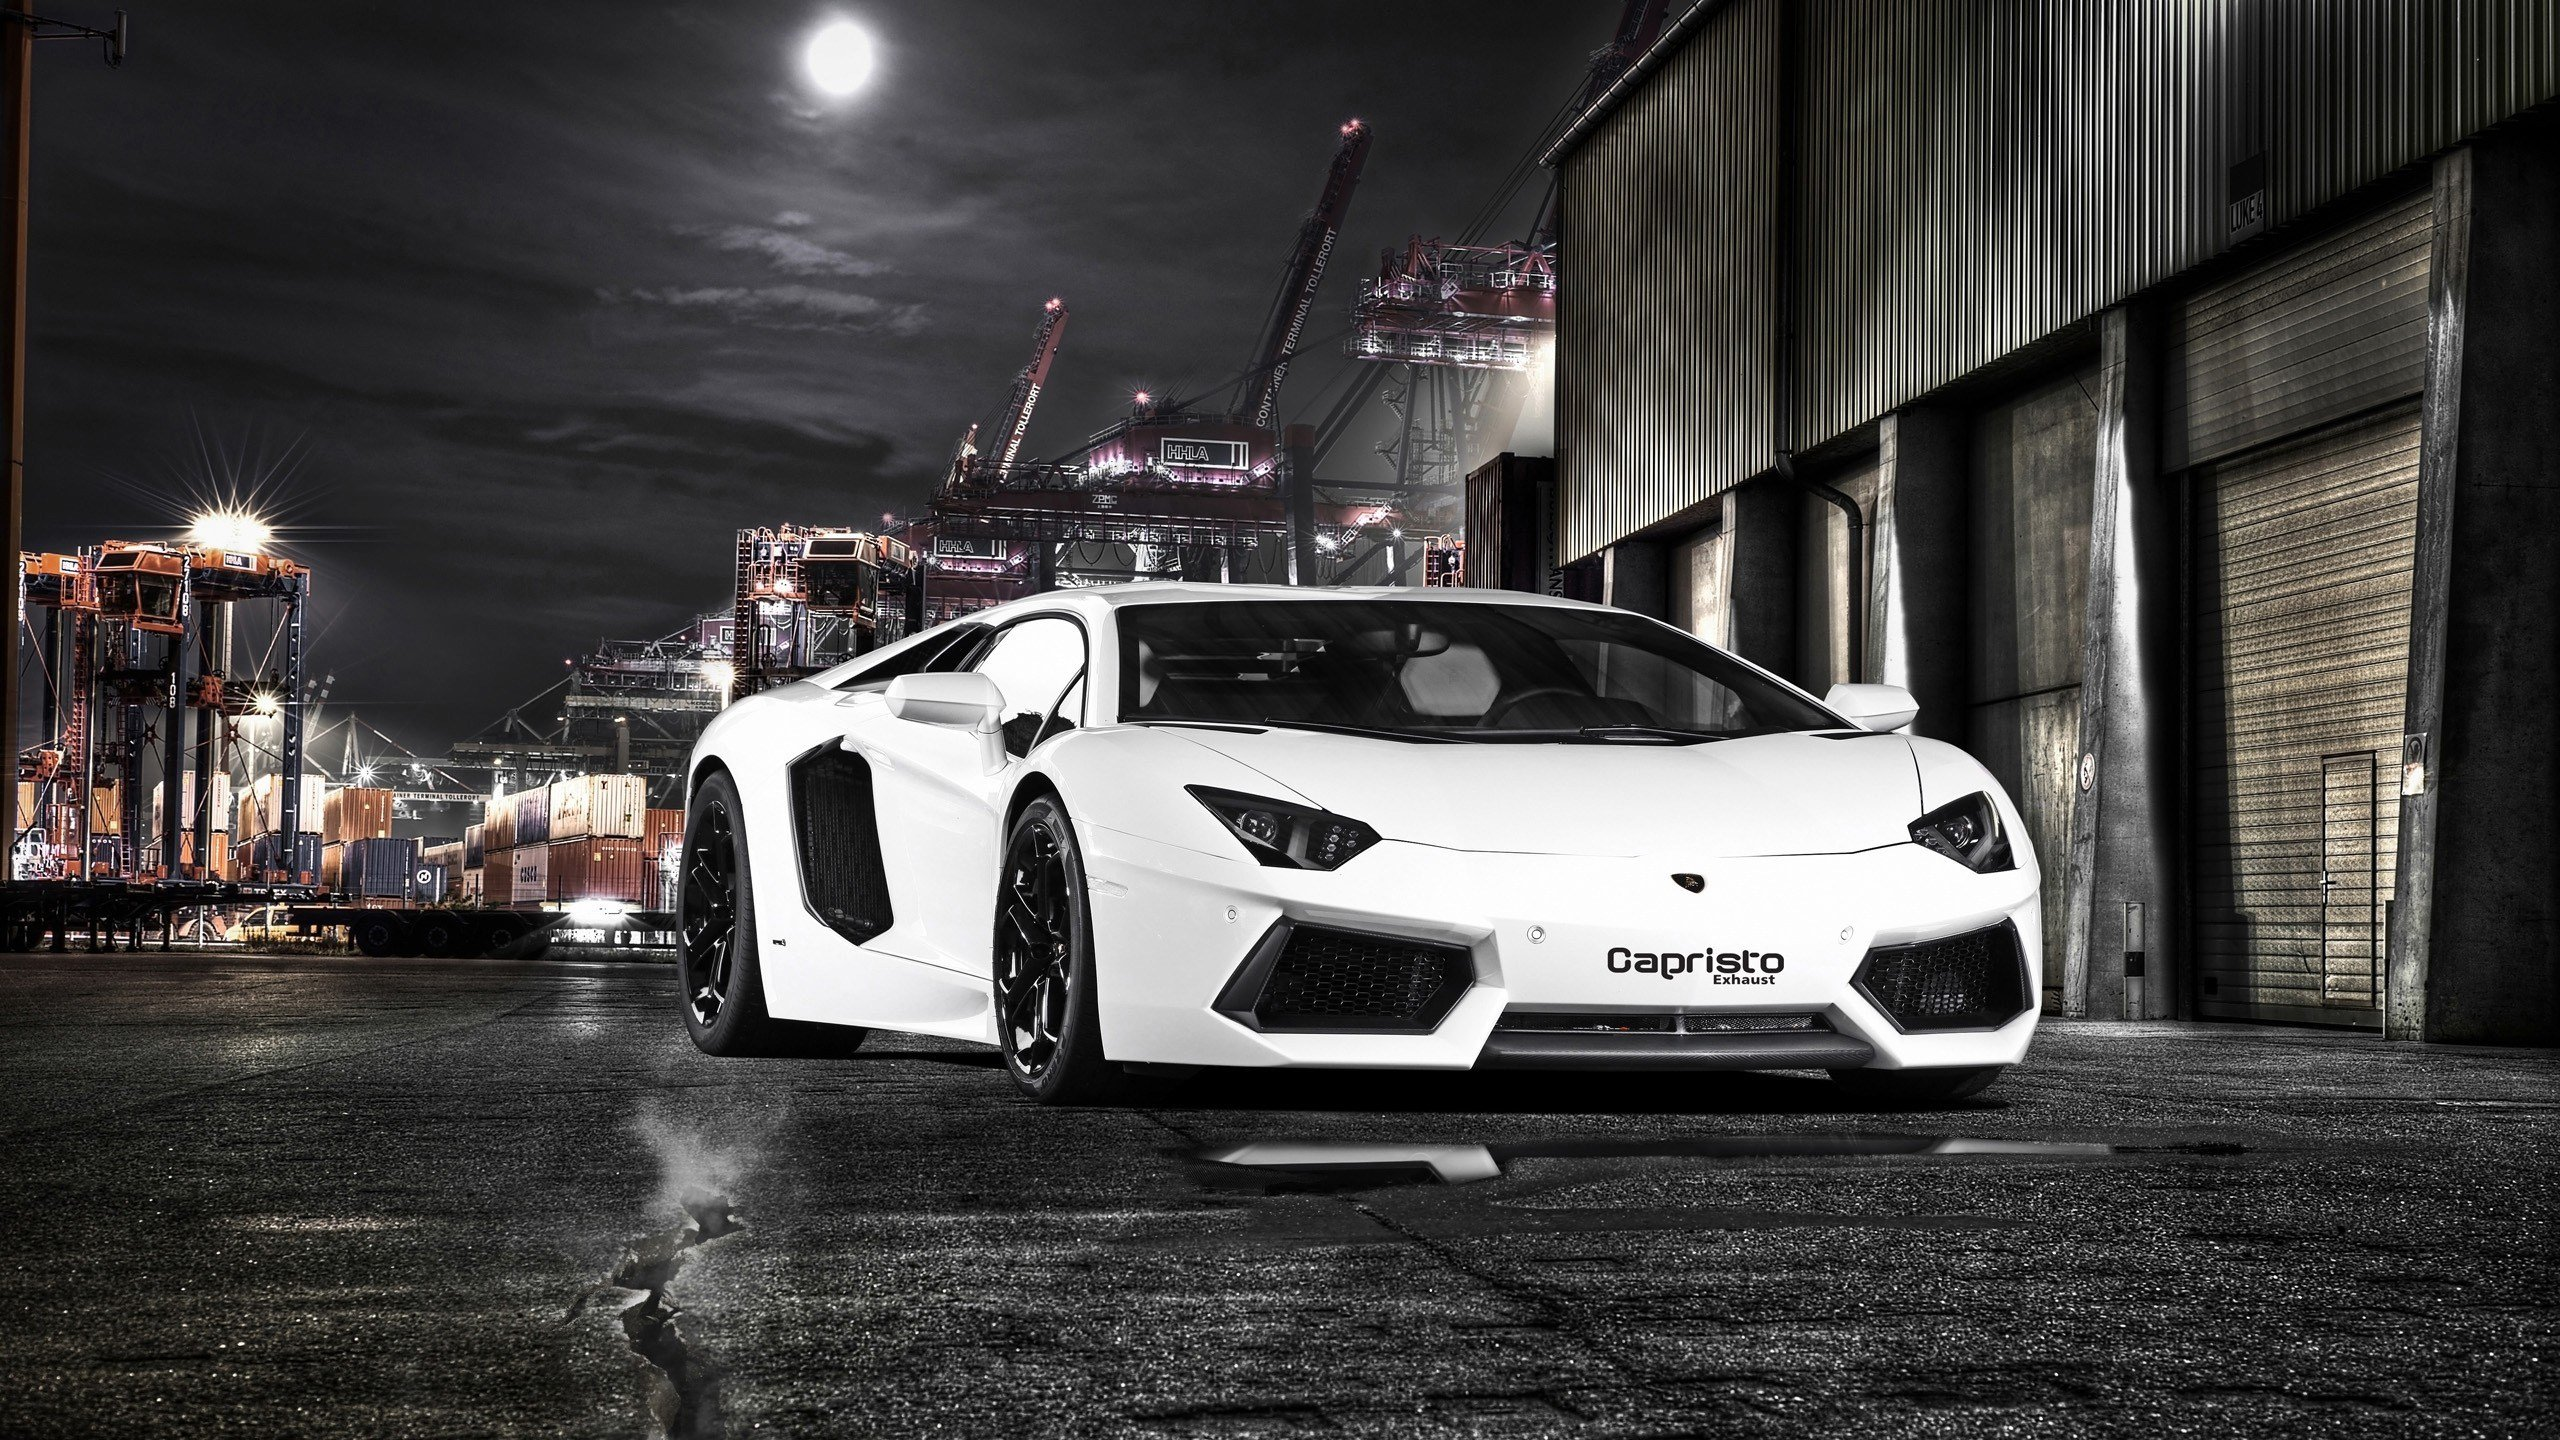 New Lamborghini Aventador By Capristo 2012 Wallpapers Hd On This Month